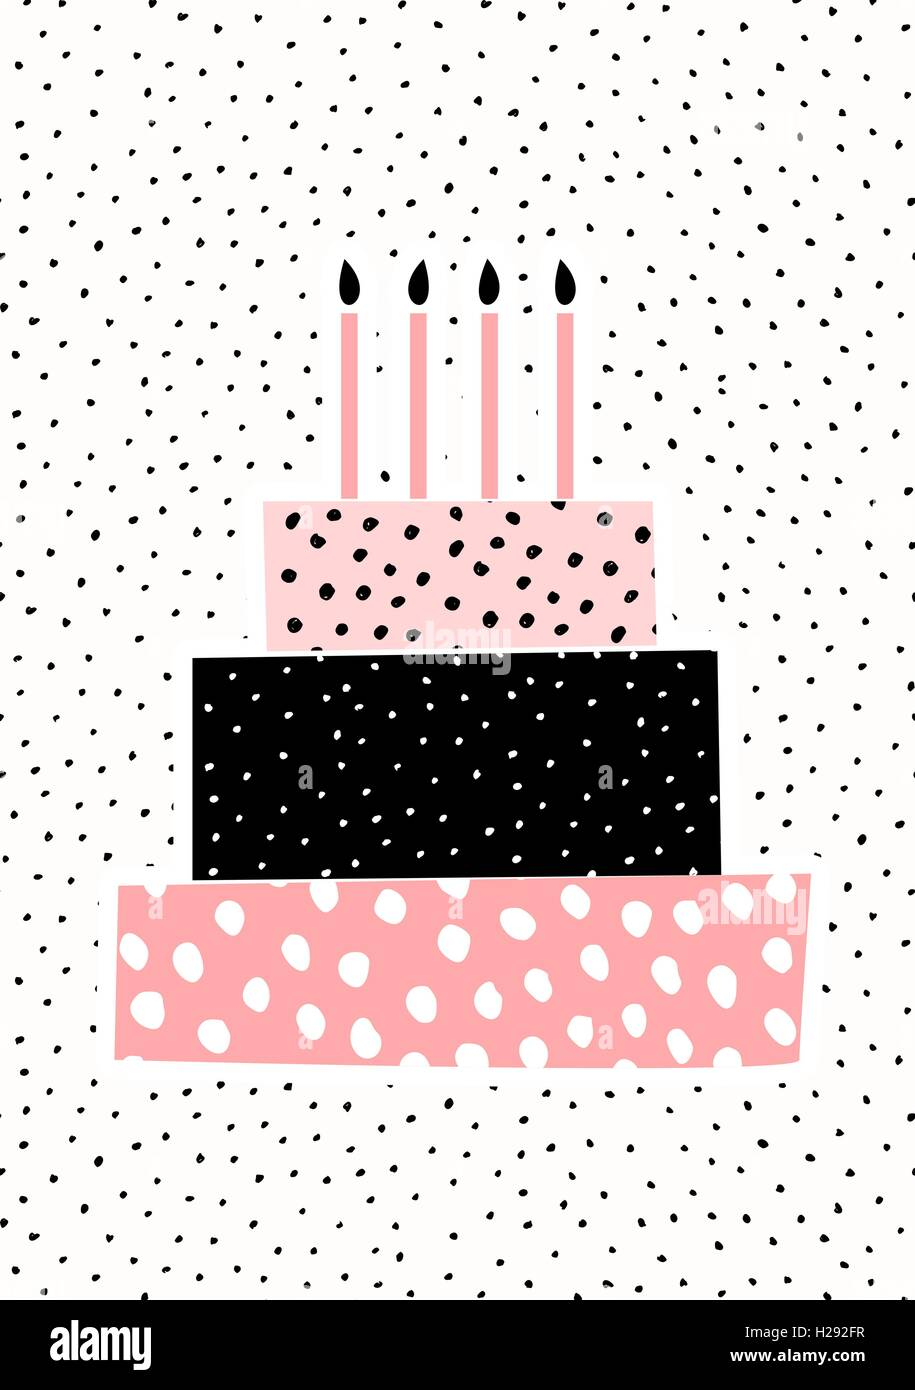 Greeting Card Template With A Cute Birthday Cake With Candles On Dots  Pattern Background.